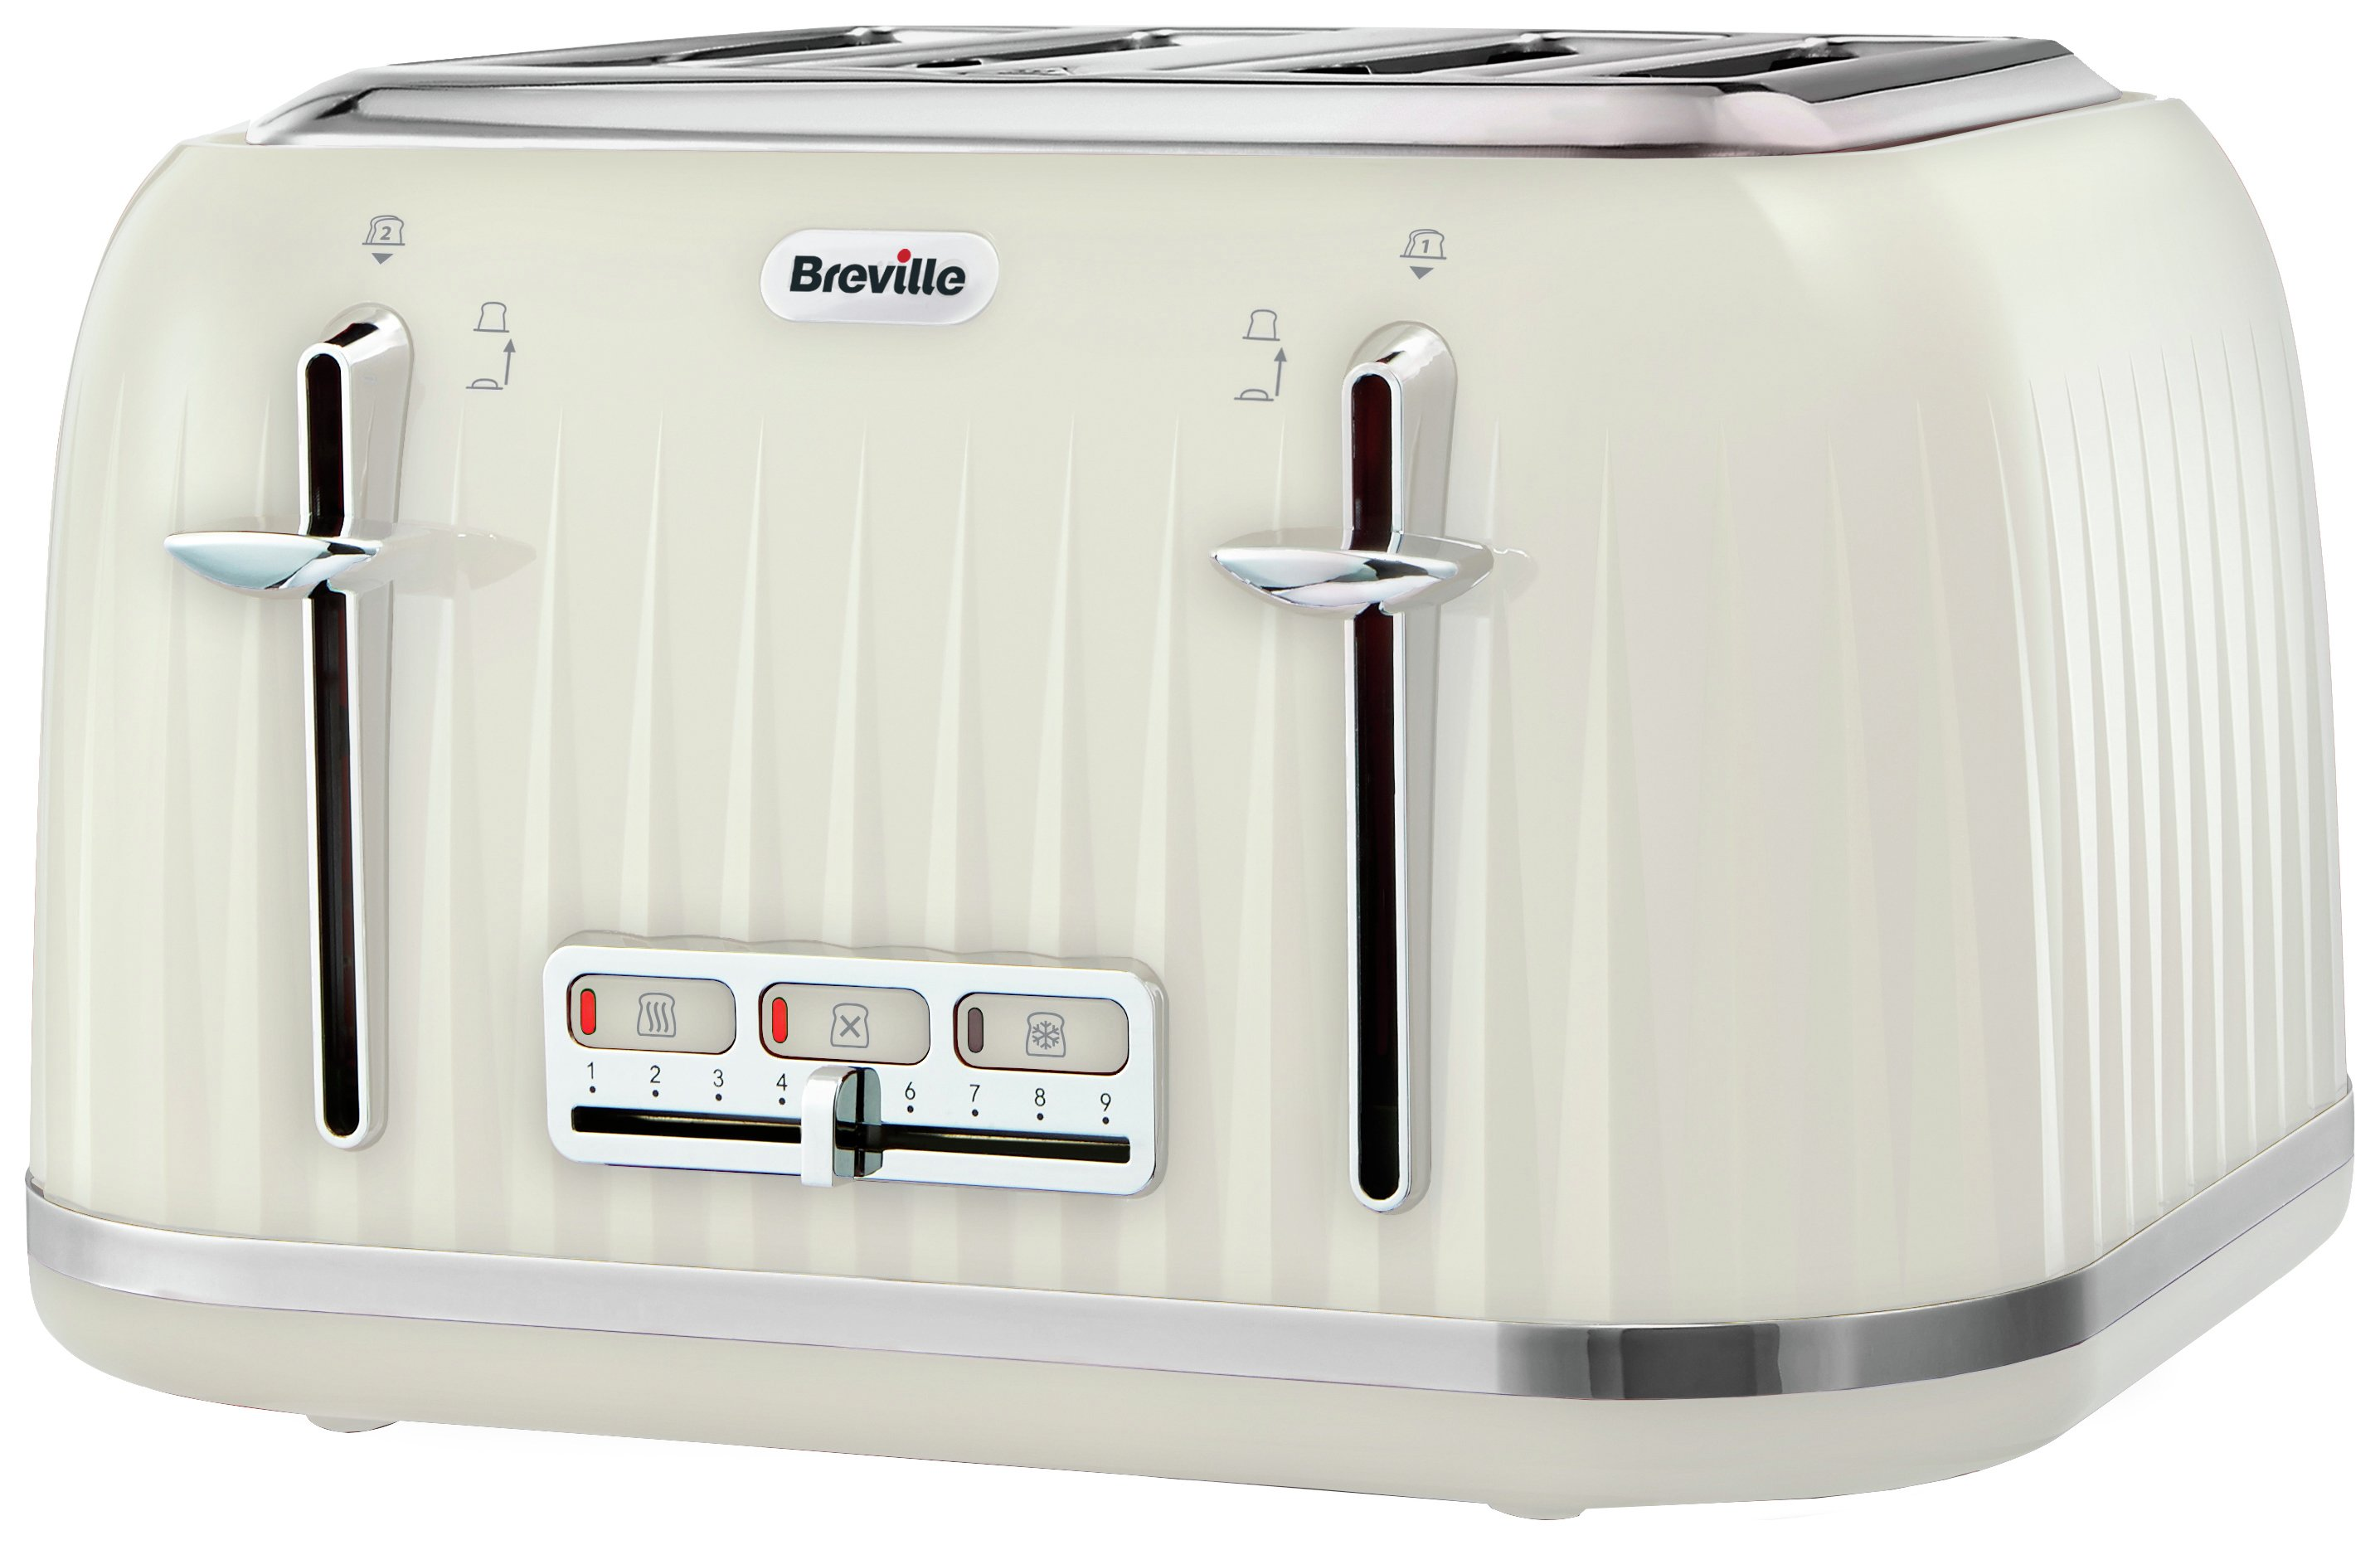 Image of Breville - Impressions 4 Slice Toaster - Cream